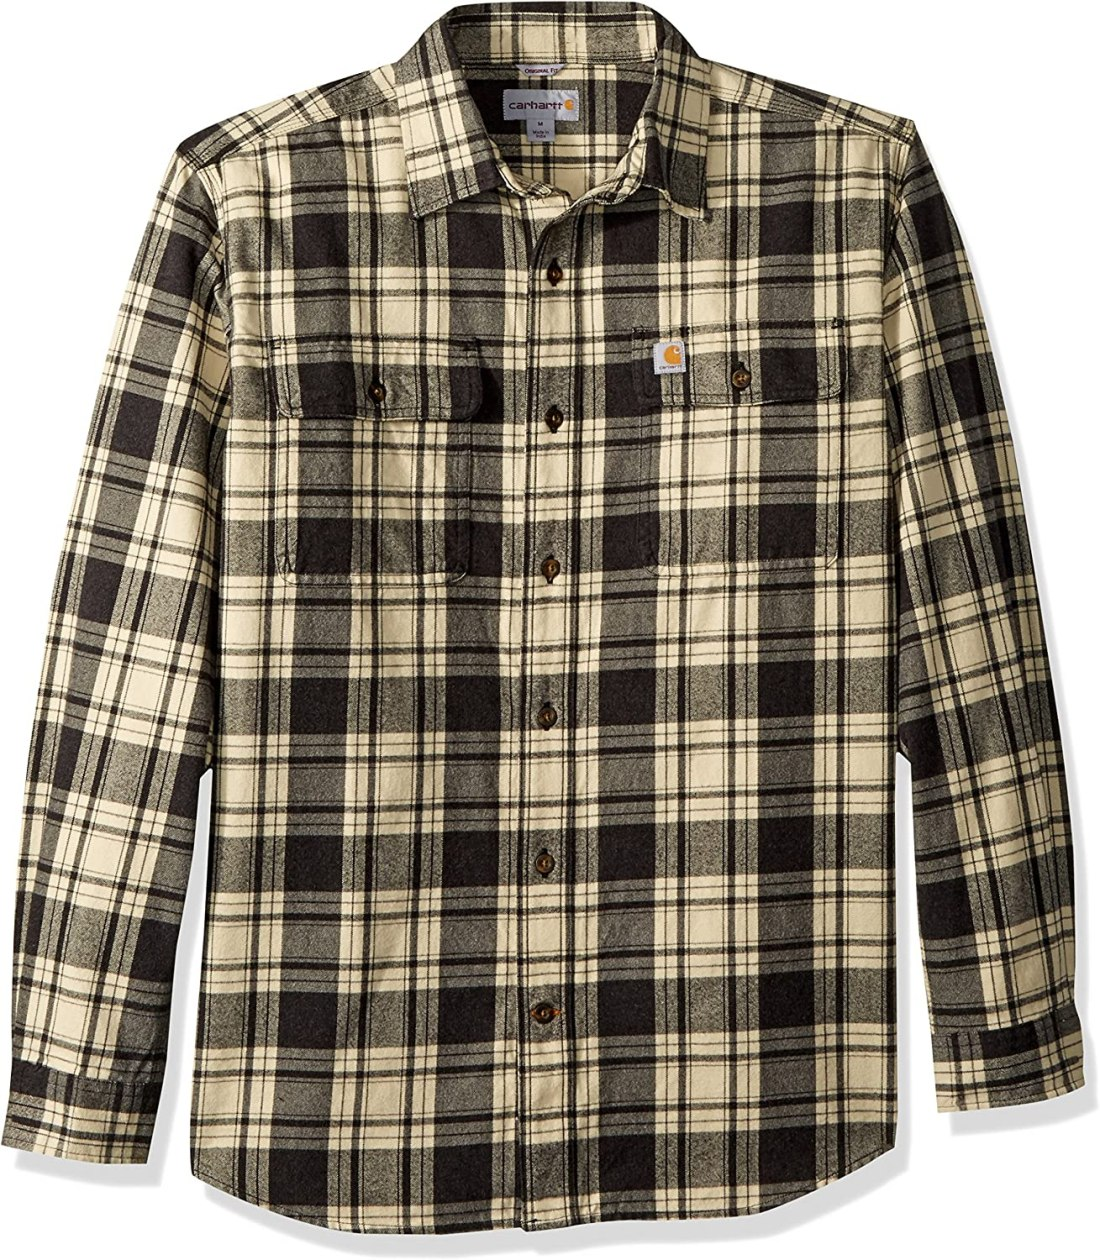 Carhartt Men's Hubbard Plaid Flannel Shirt at Amazon Men's Clothing store